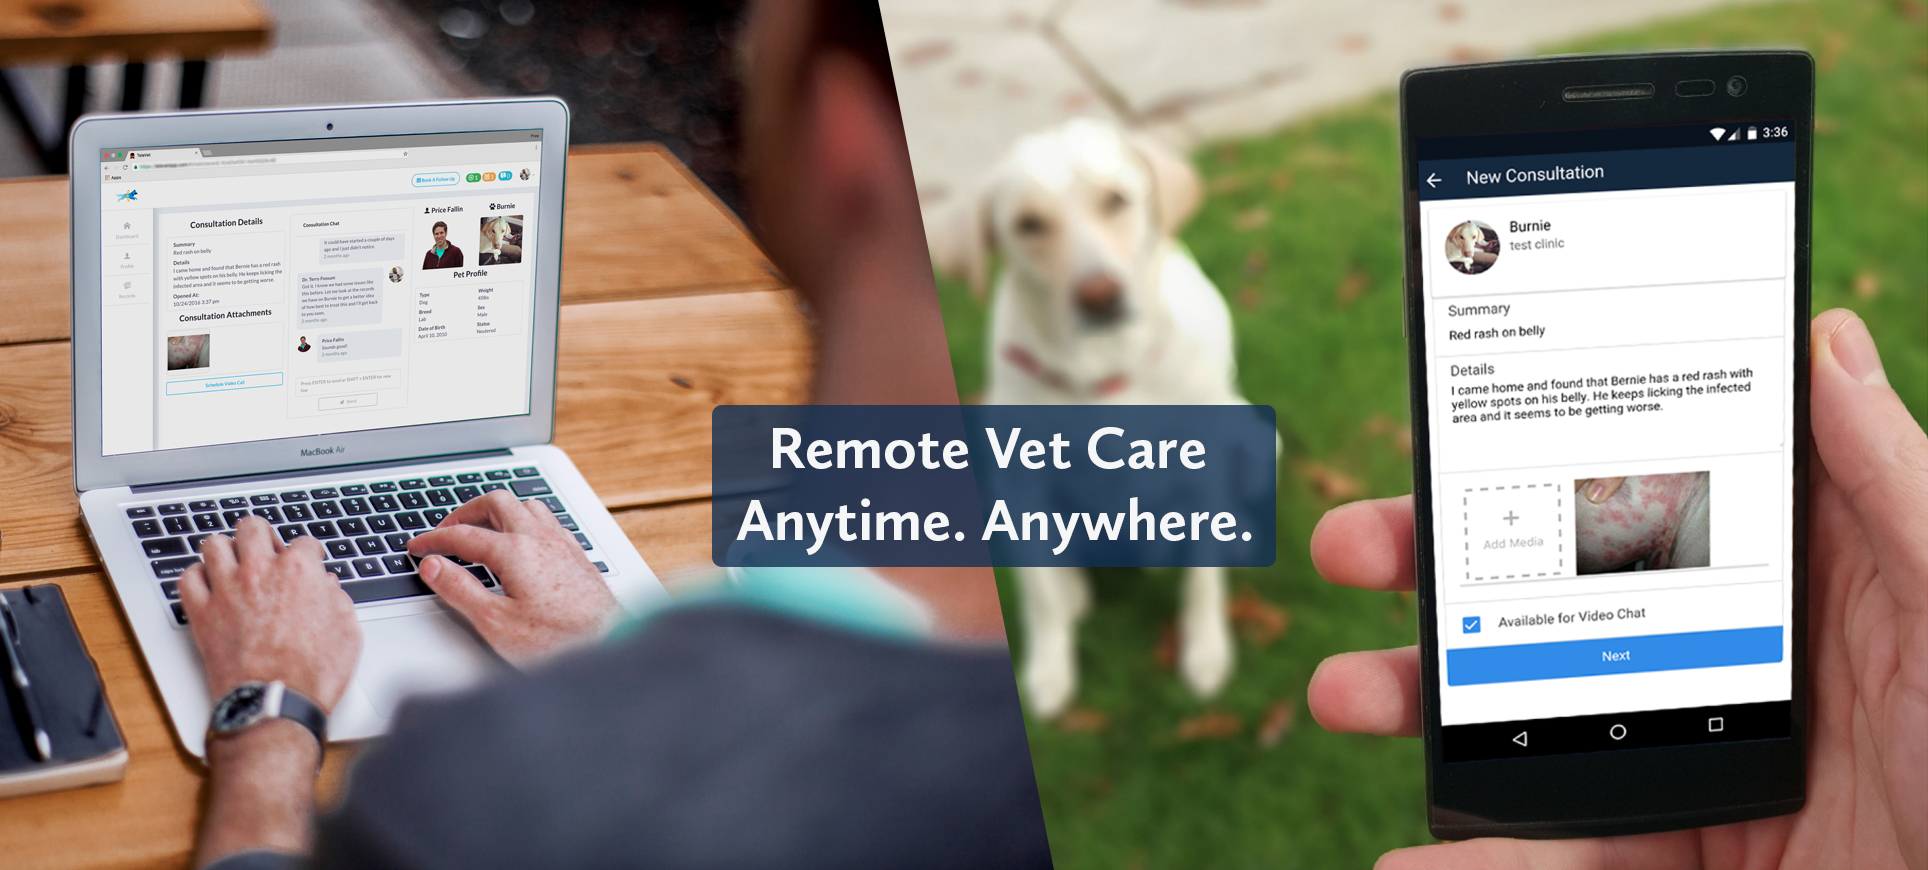 Remove Vet Care. Anytime. Anywhere.